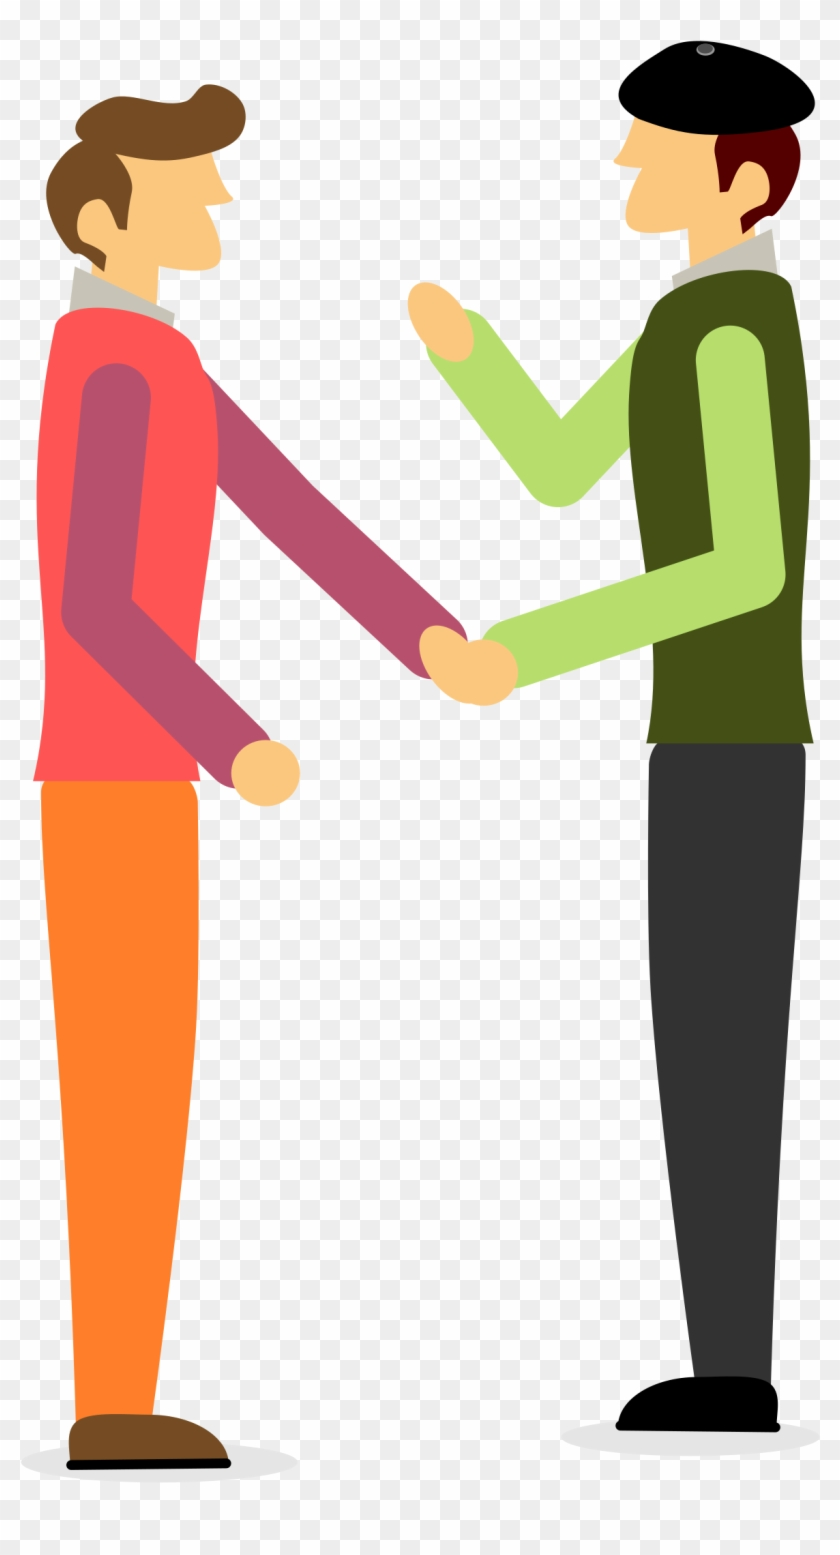 Clipart - People Shaking Hands Clipart #246615